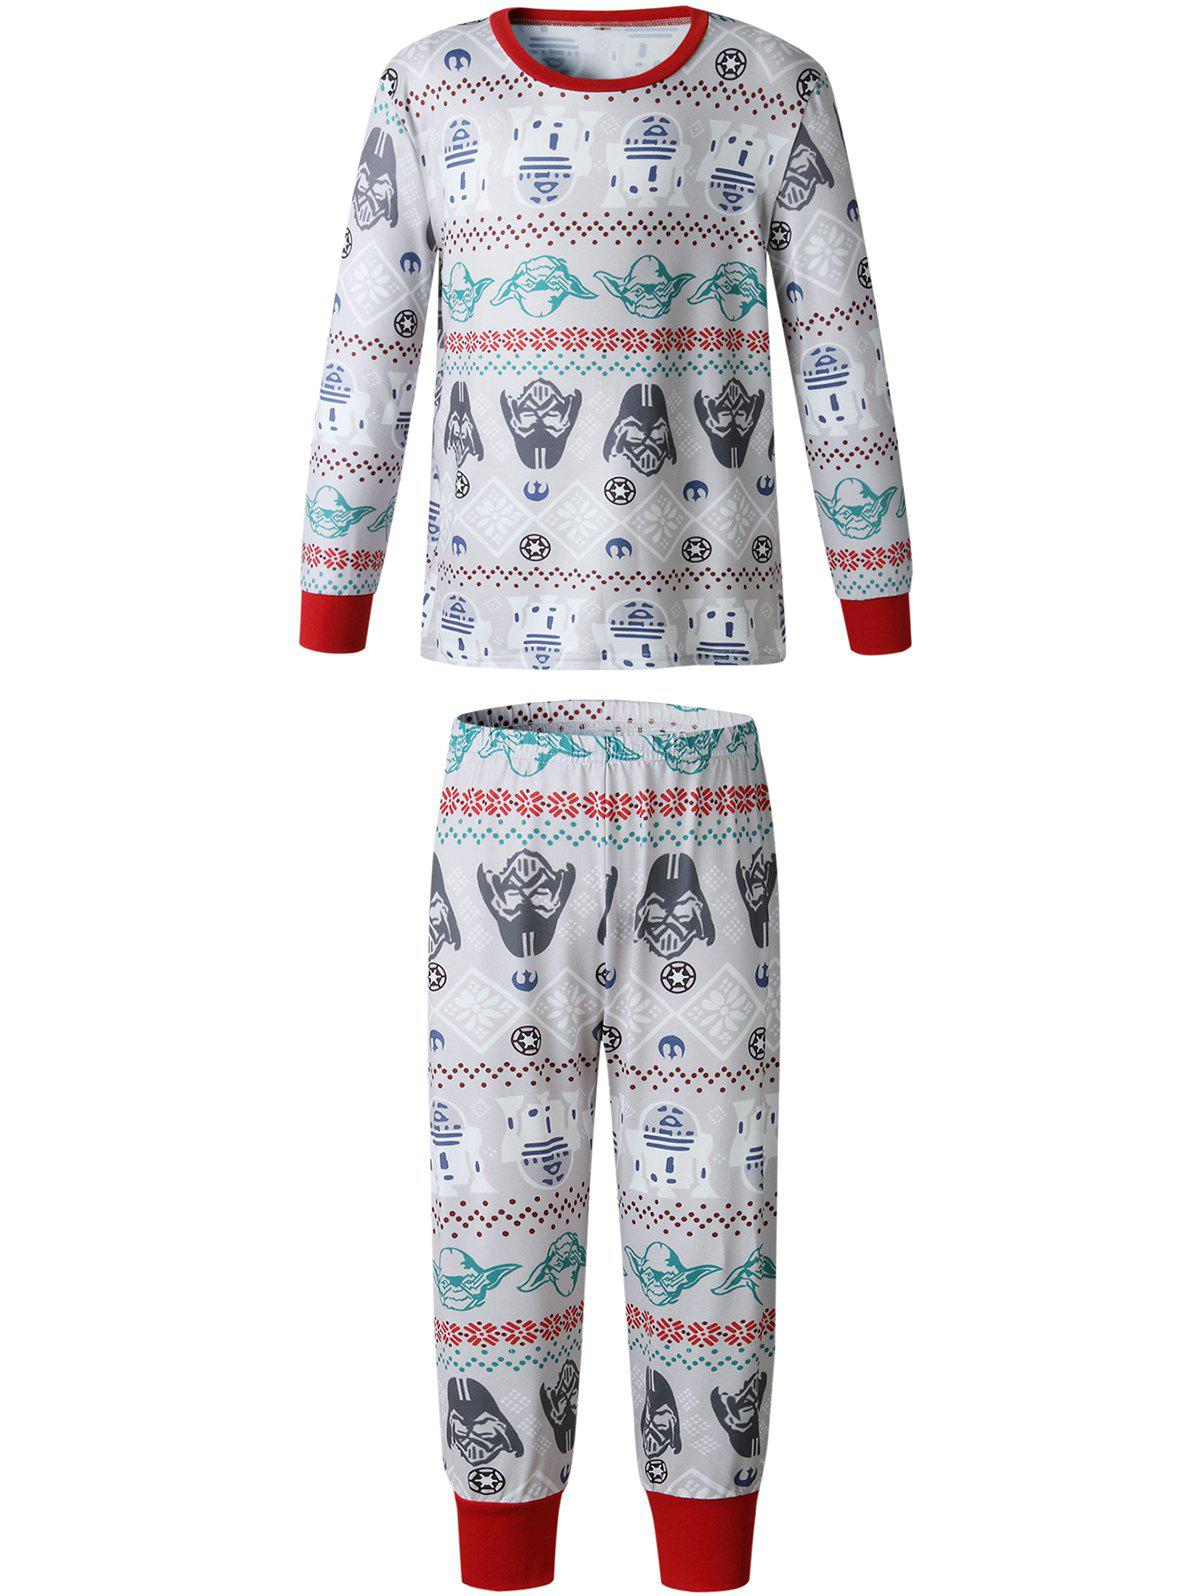 Discount Christmas  Family Pajama Long Sleeves Casual  Print  Sets Parent-Child Home Suit Pyjamas